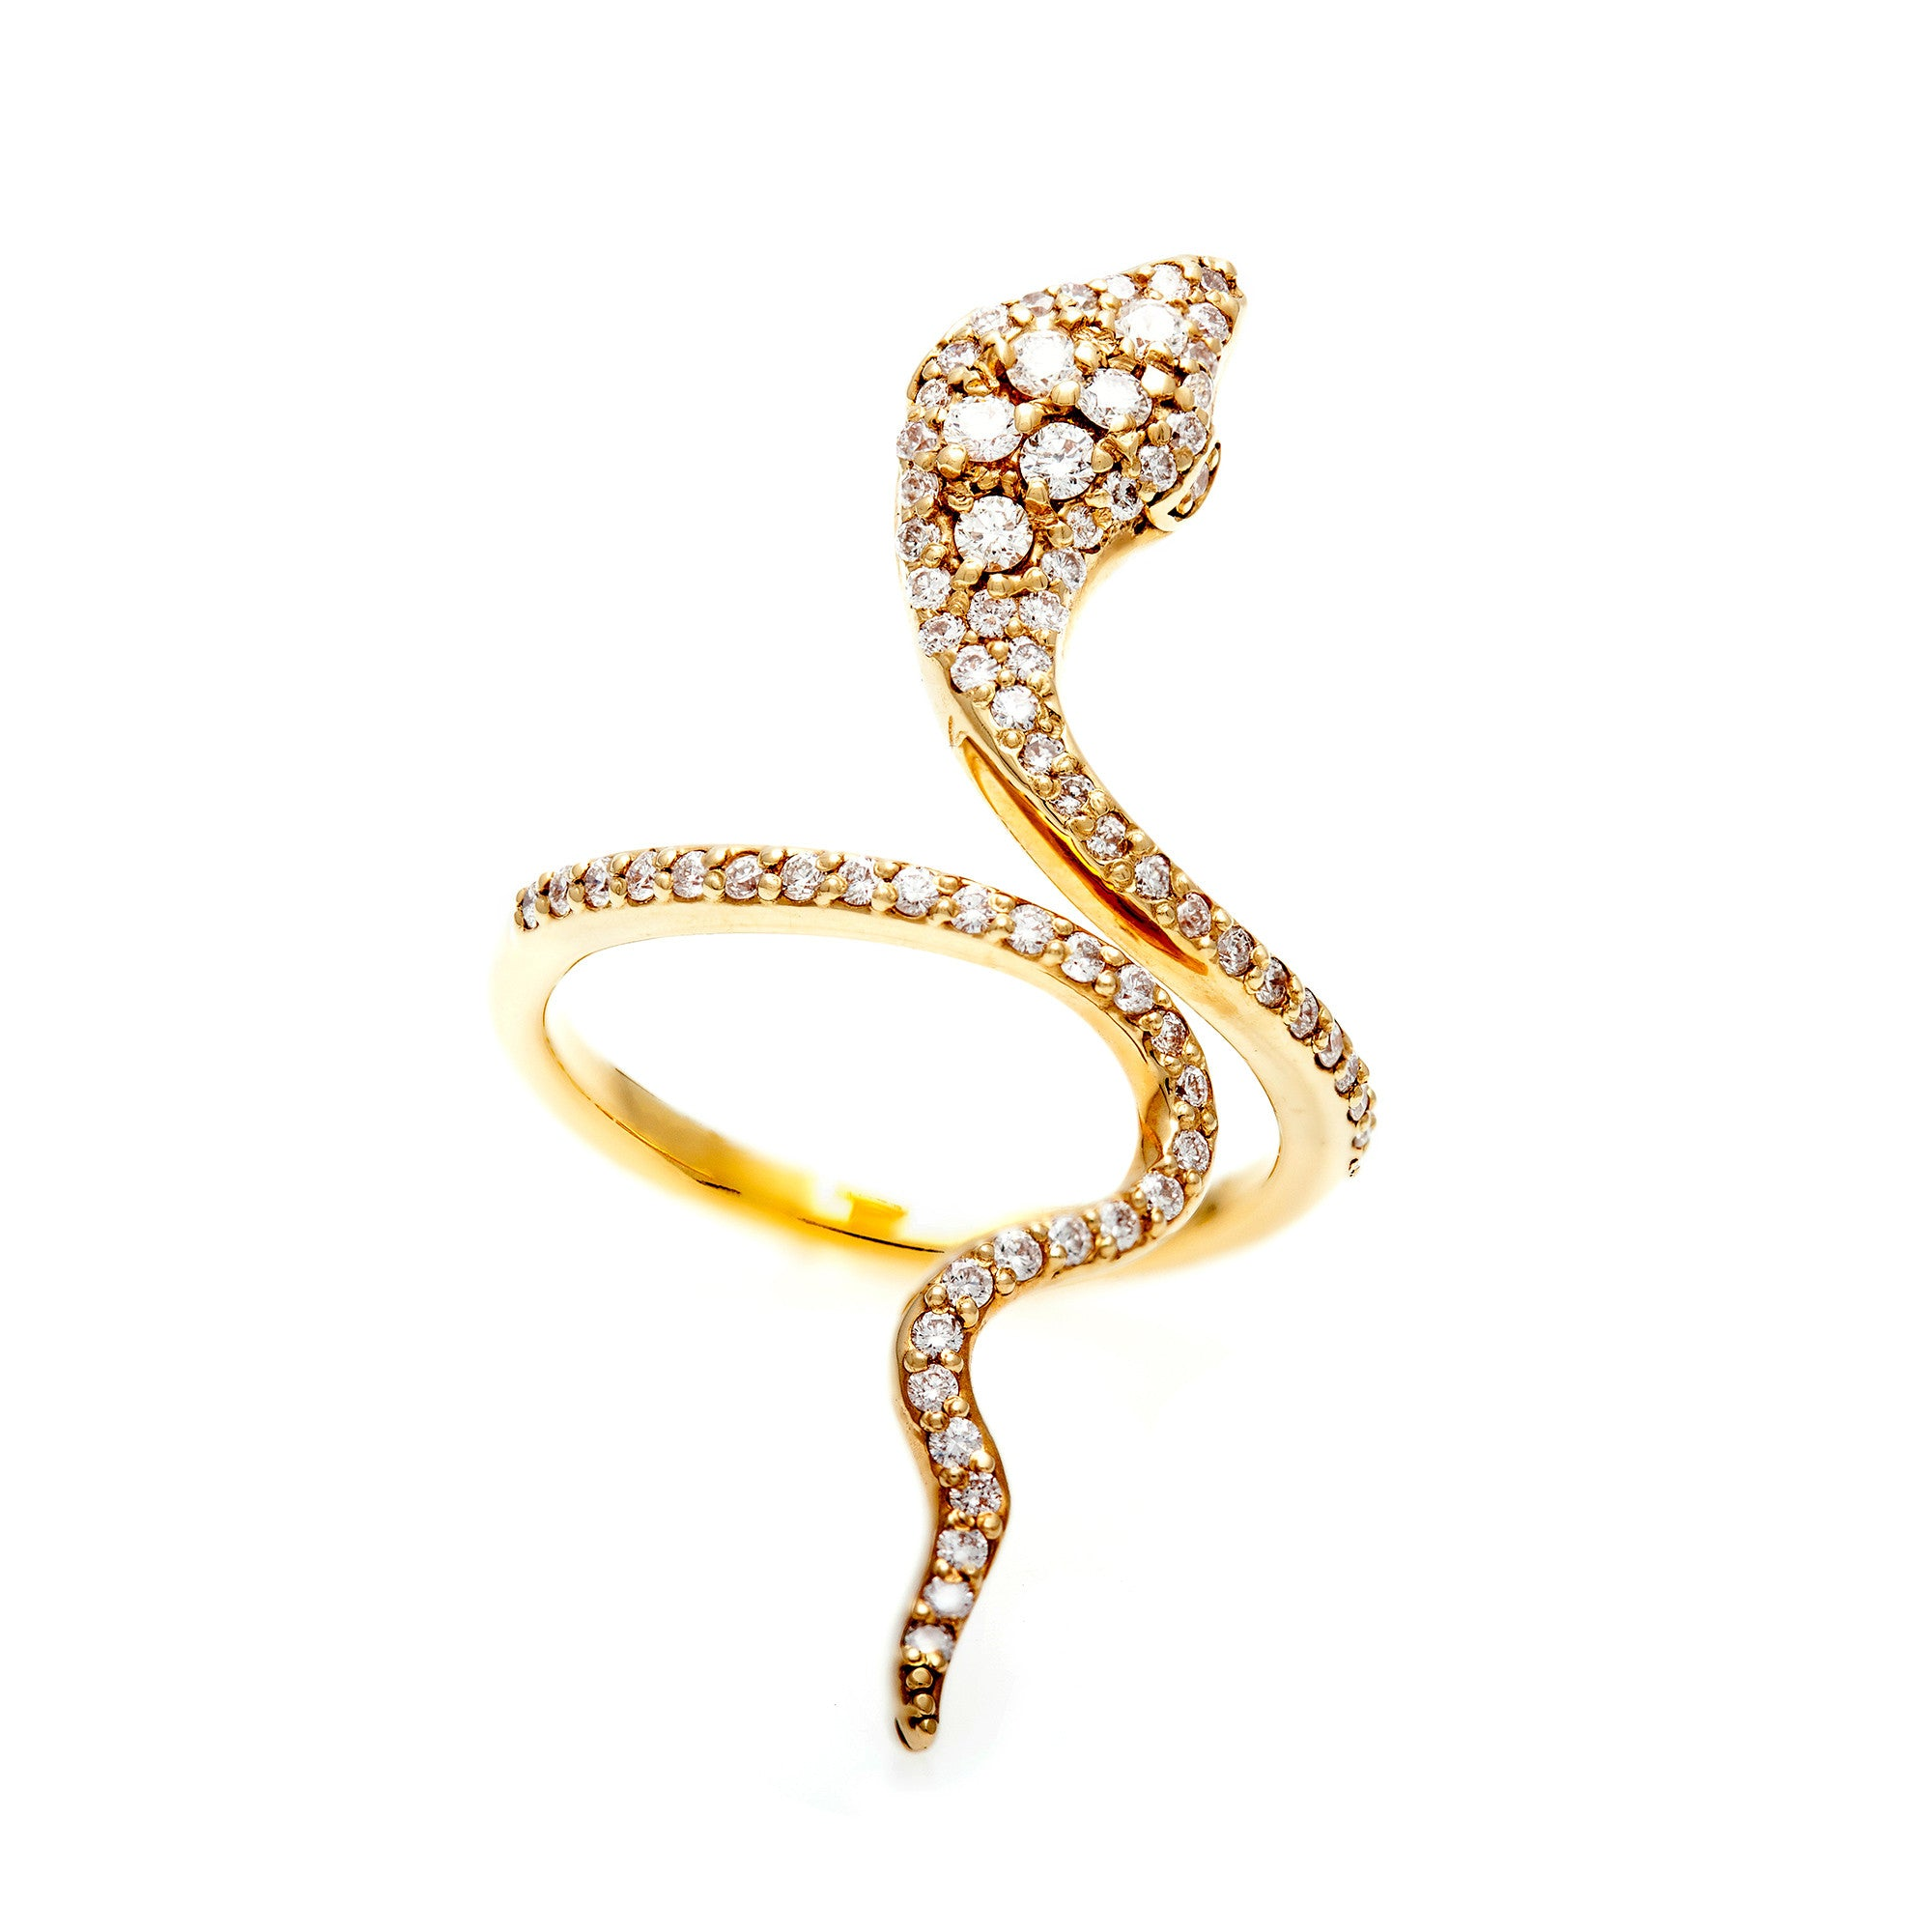 The Snake Ring-70% OFF!